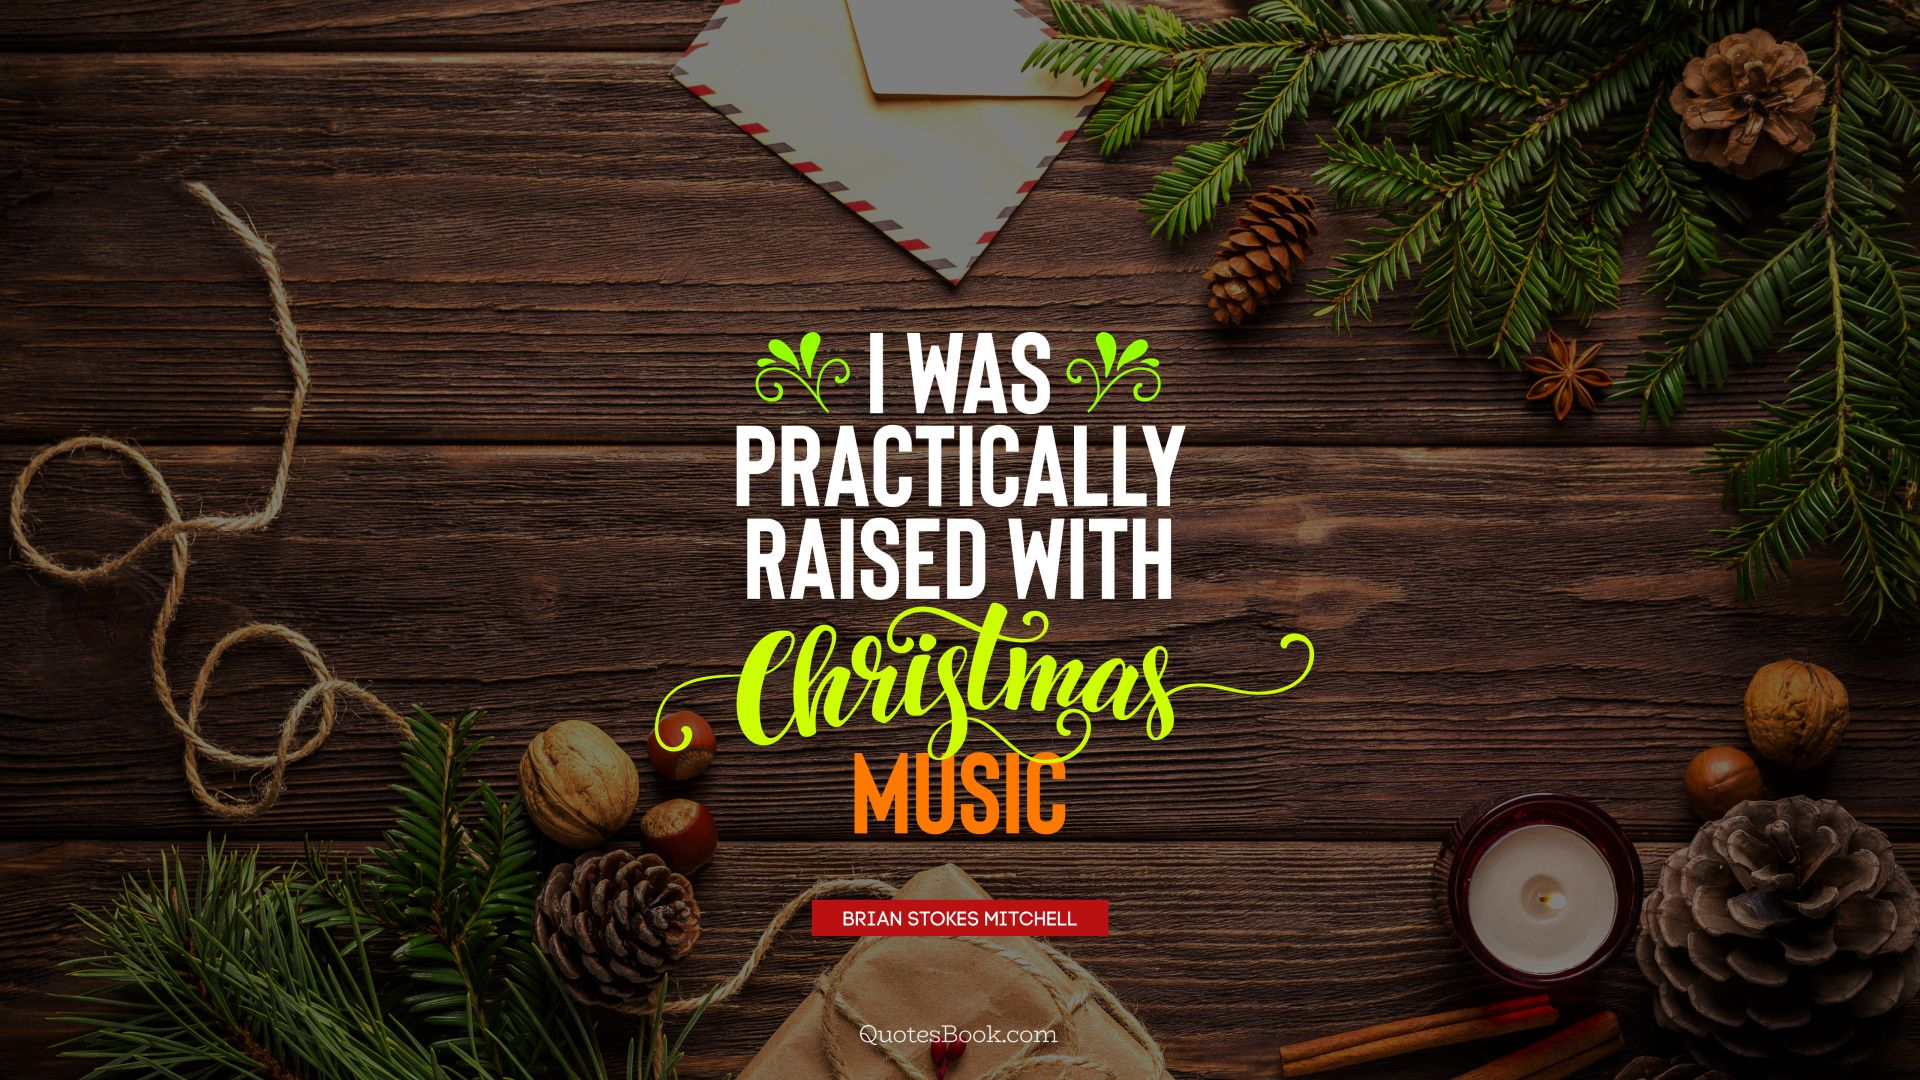 I was practically raised with Christmas music. - Quote by Brian Stokes Mitchell